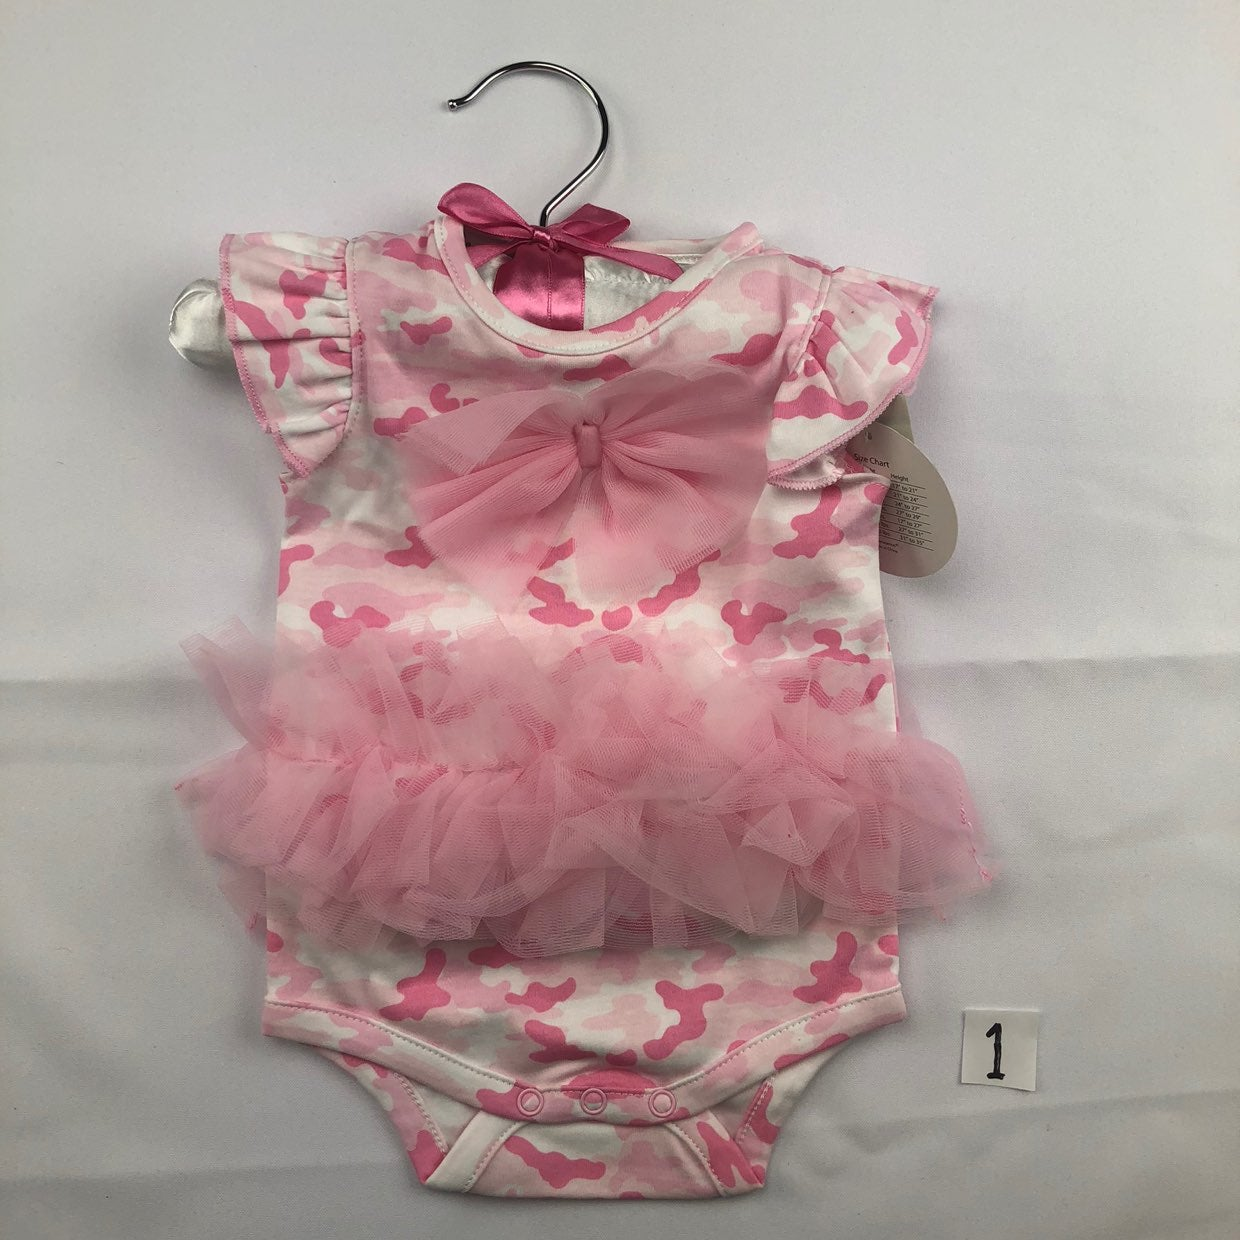 Babysrus girls onesie